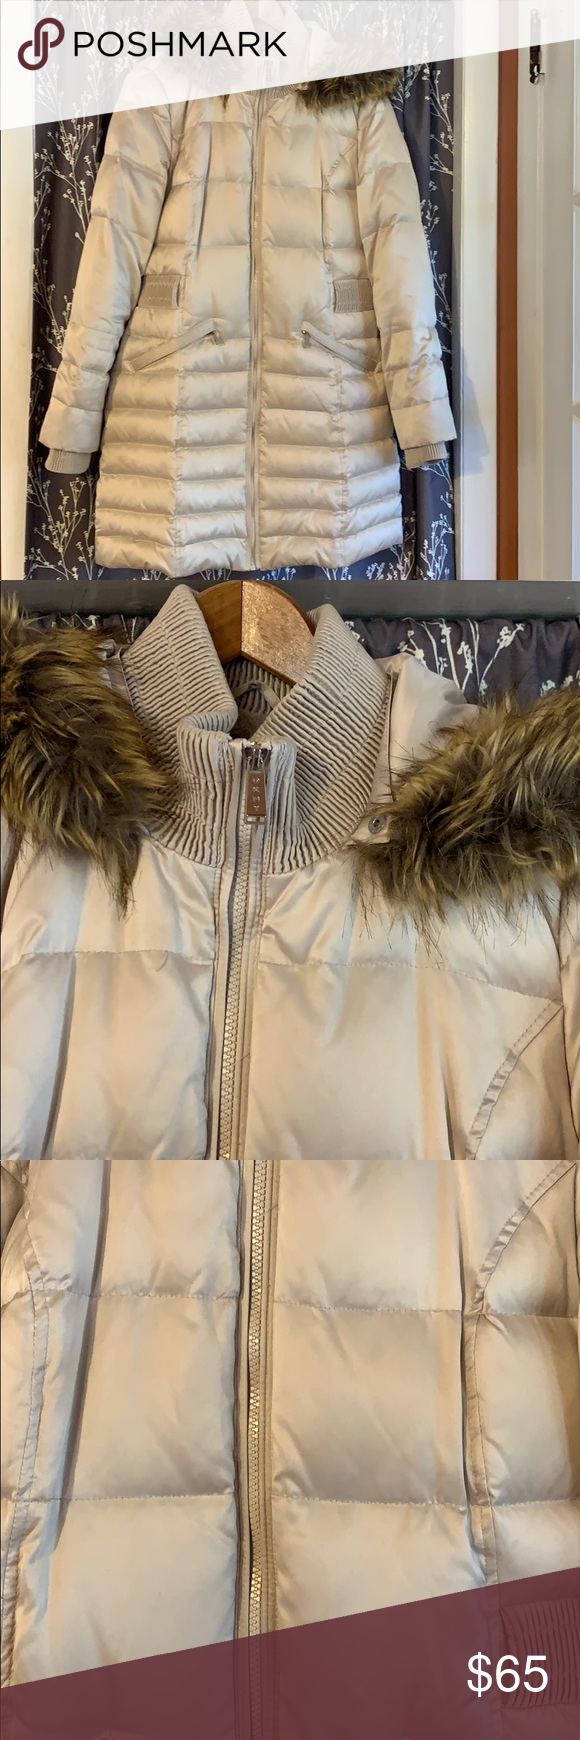 Dkny Taupe Puffer Coat Puffer Coat Dkny Taupe [ 1740 x 580 Pixel ]